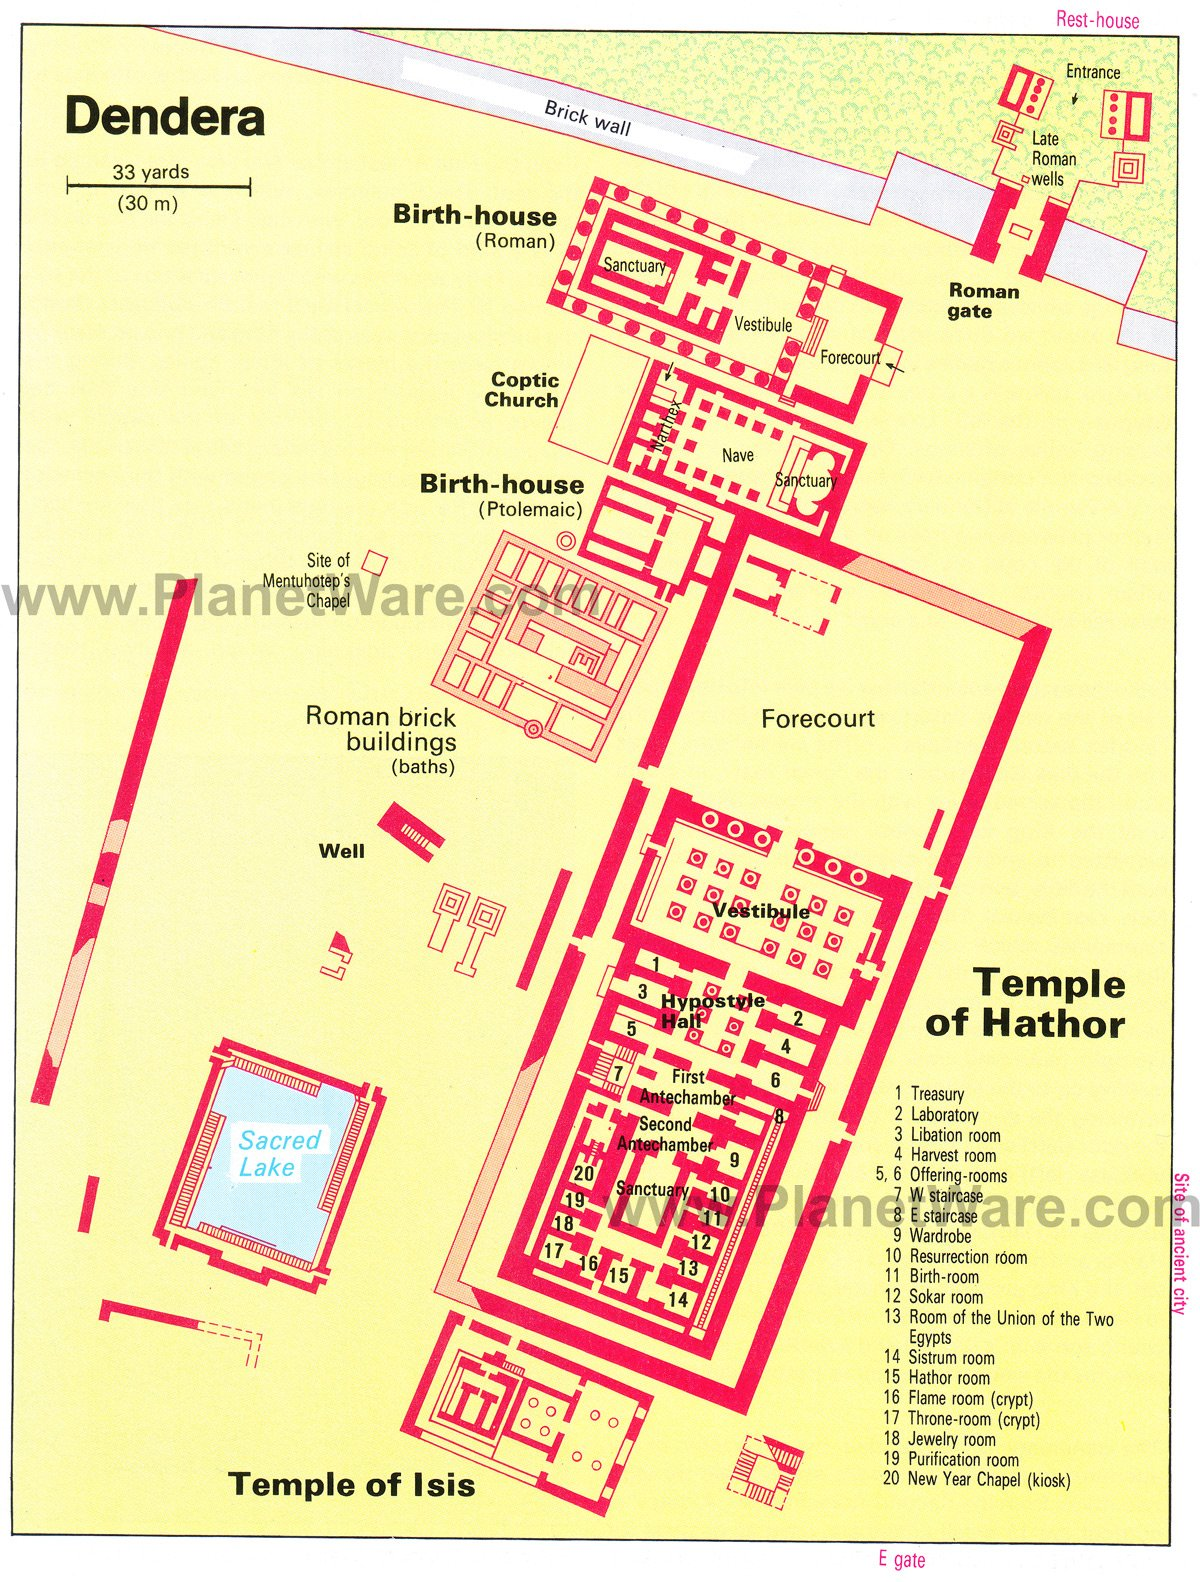 Dendera - Temple of Hathor - Floor plan map